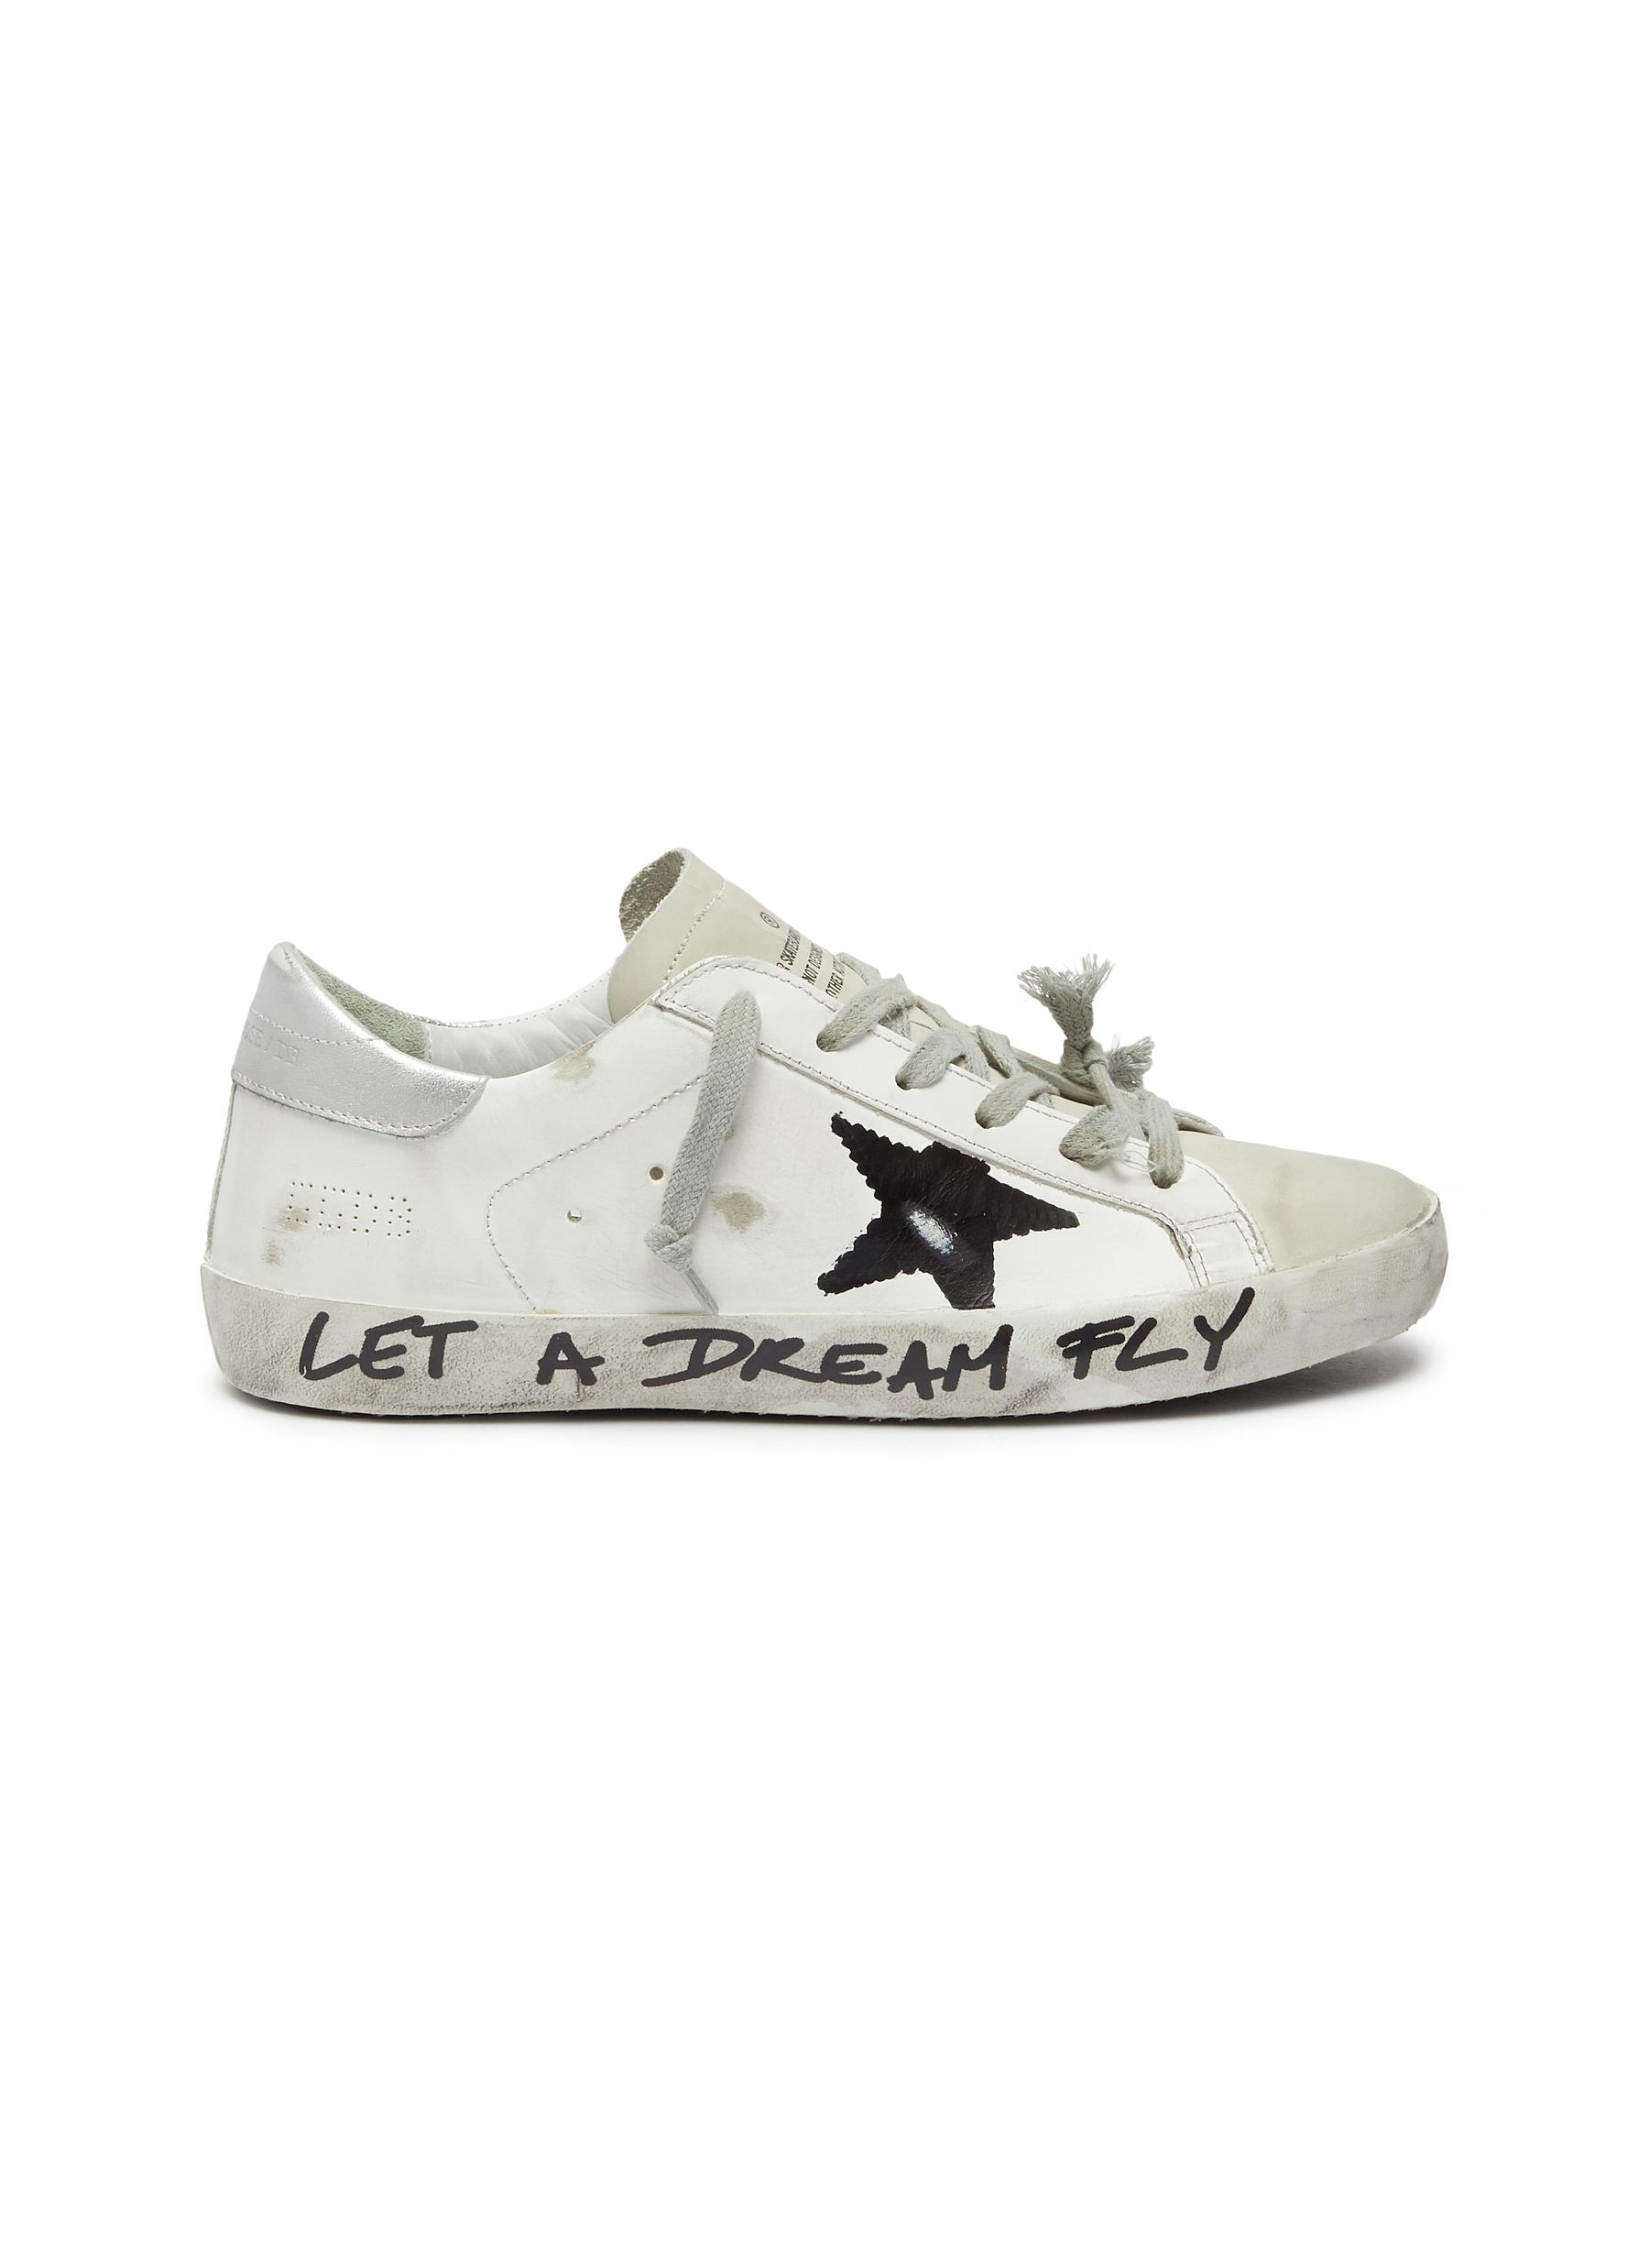 Superstar slogan print outsole leather sneakers by Golden Goose